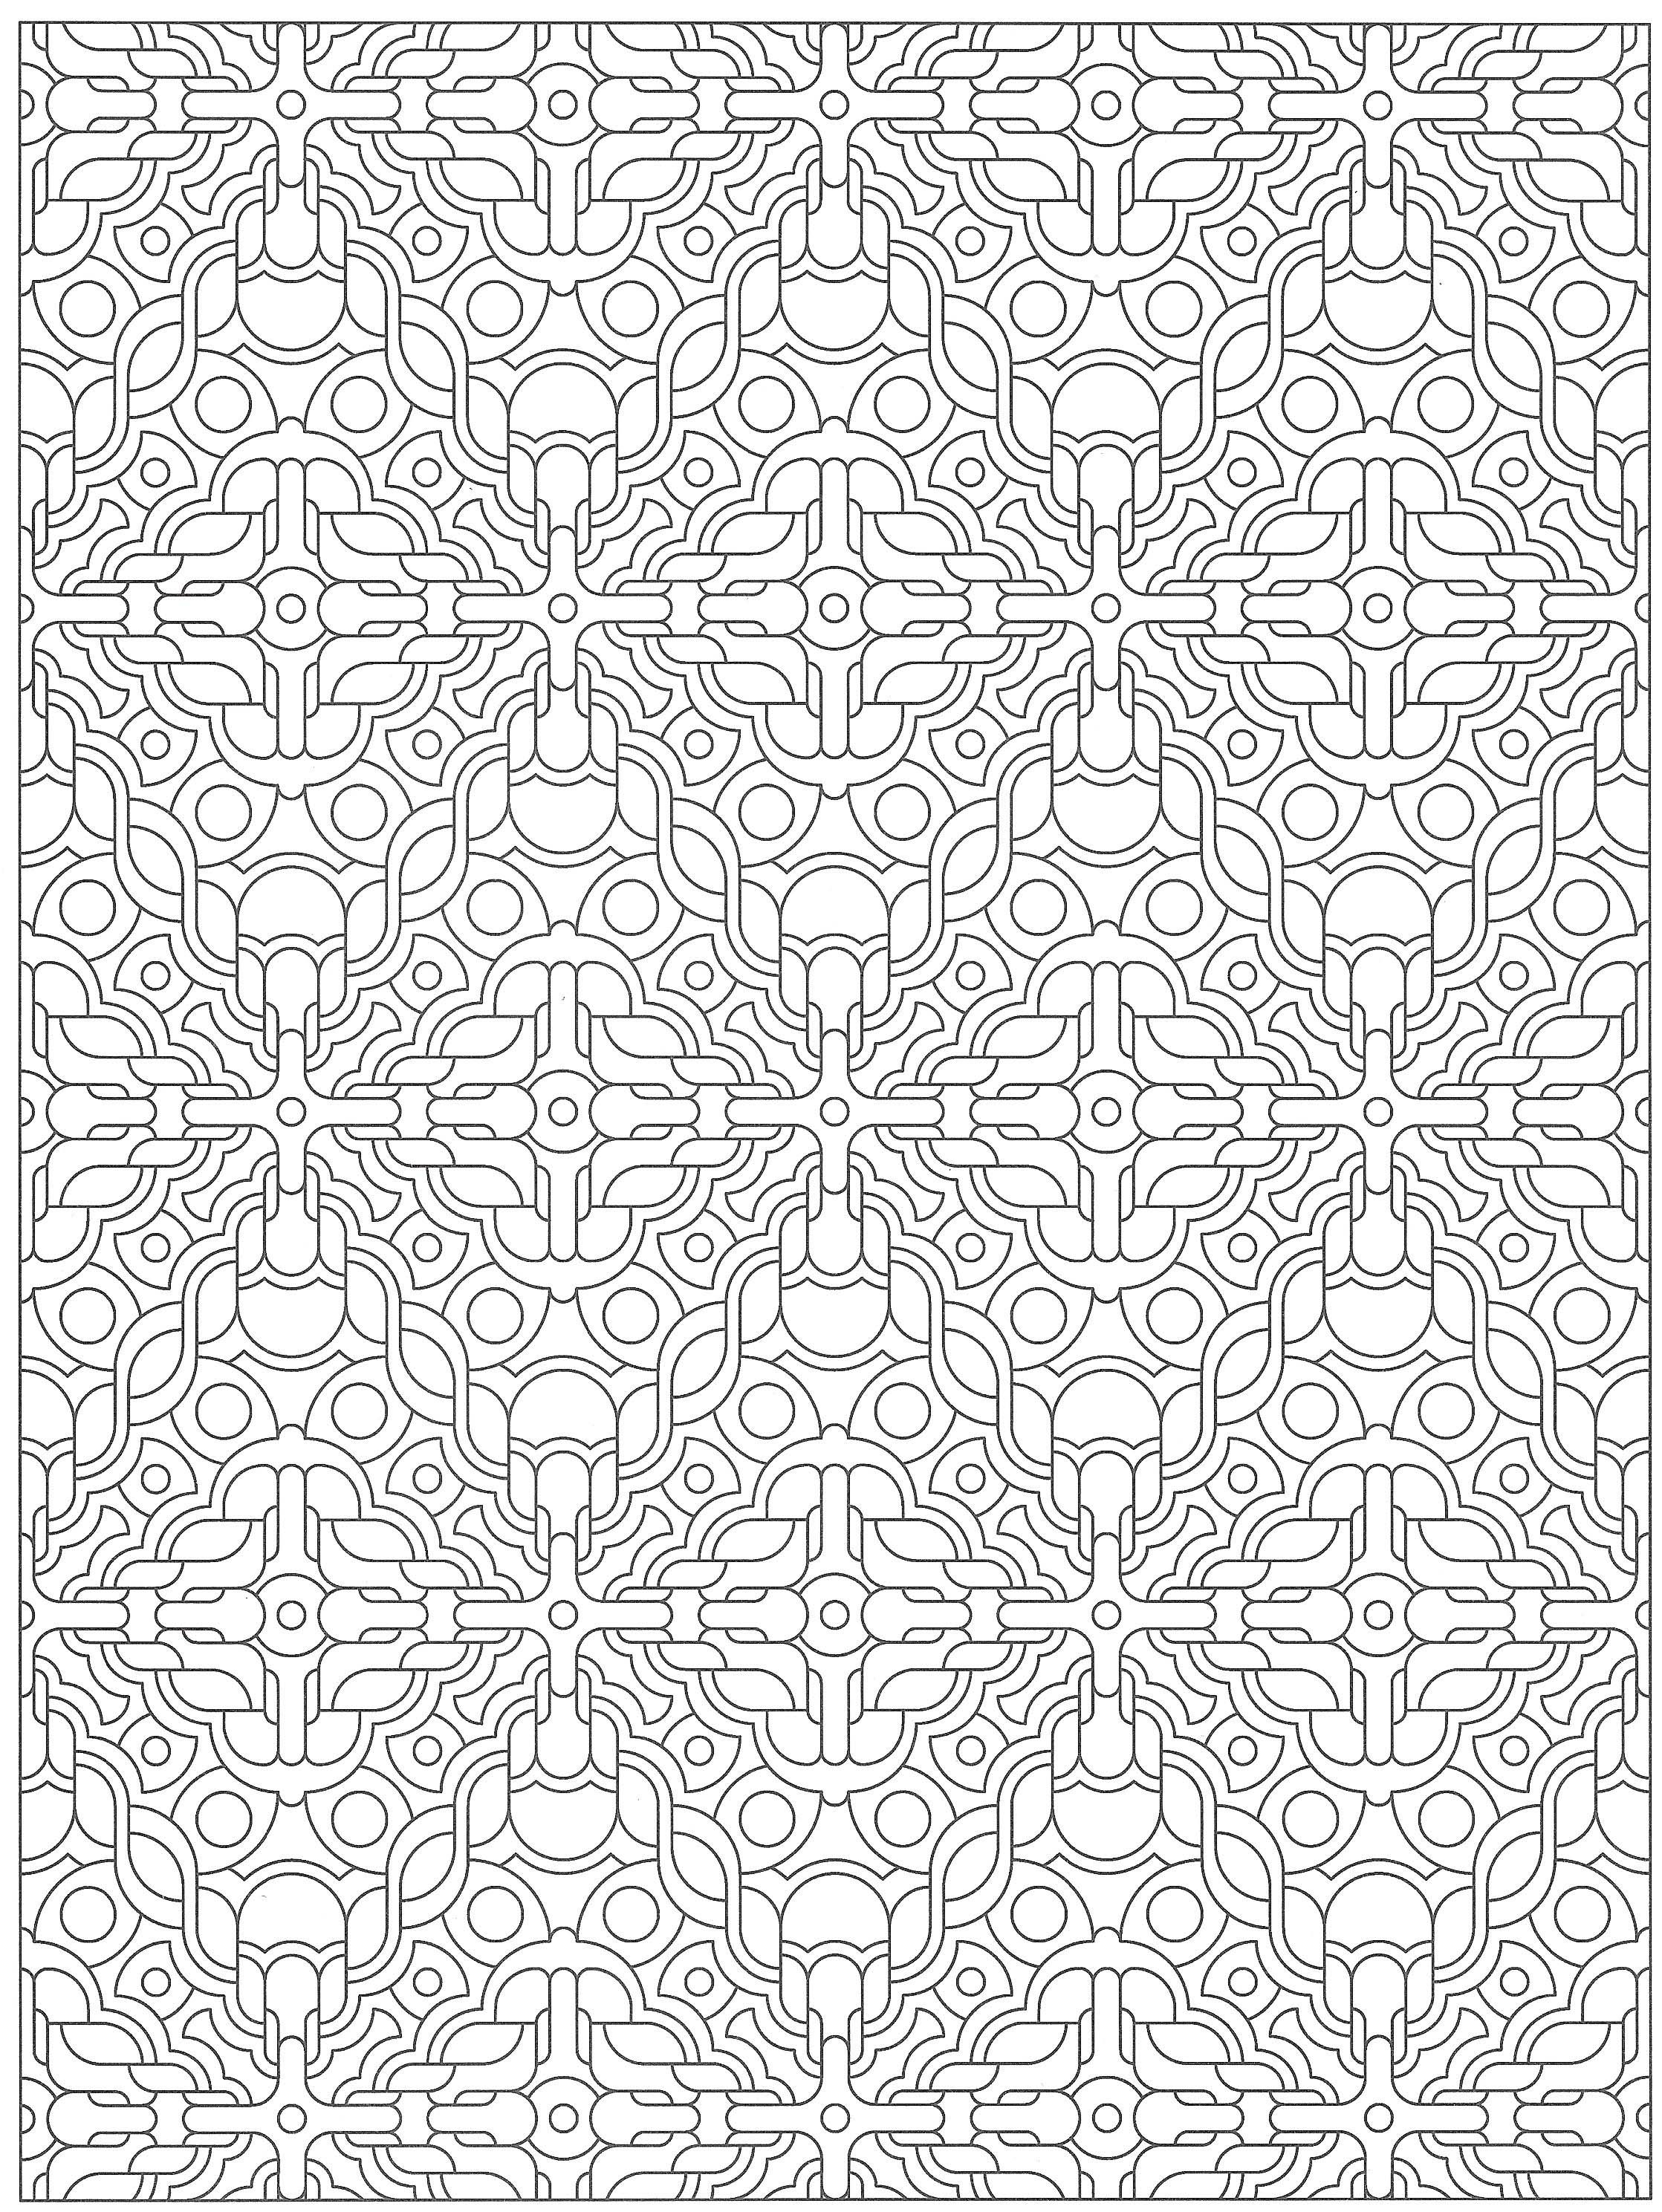 pattern coloring books creative haven tessellations coloring page pattern coloring pattern books